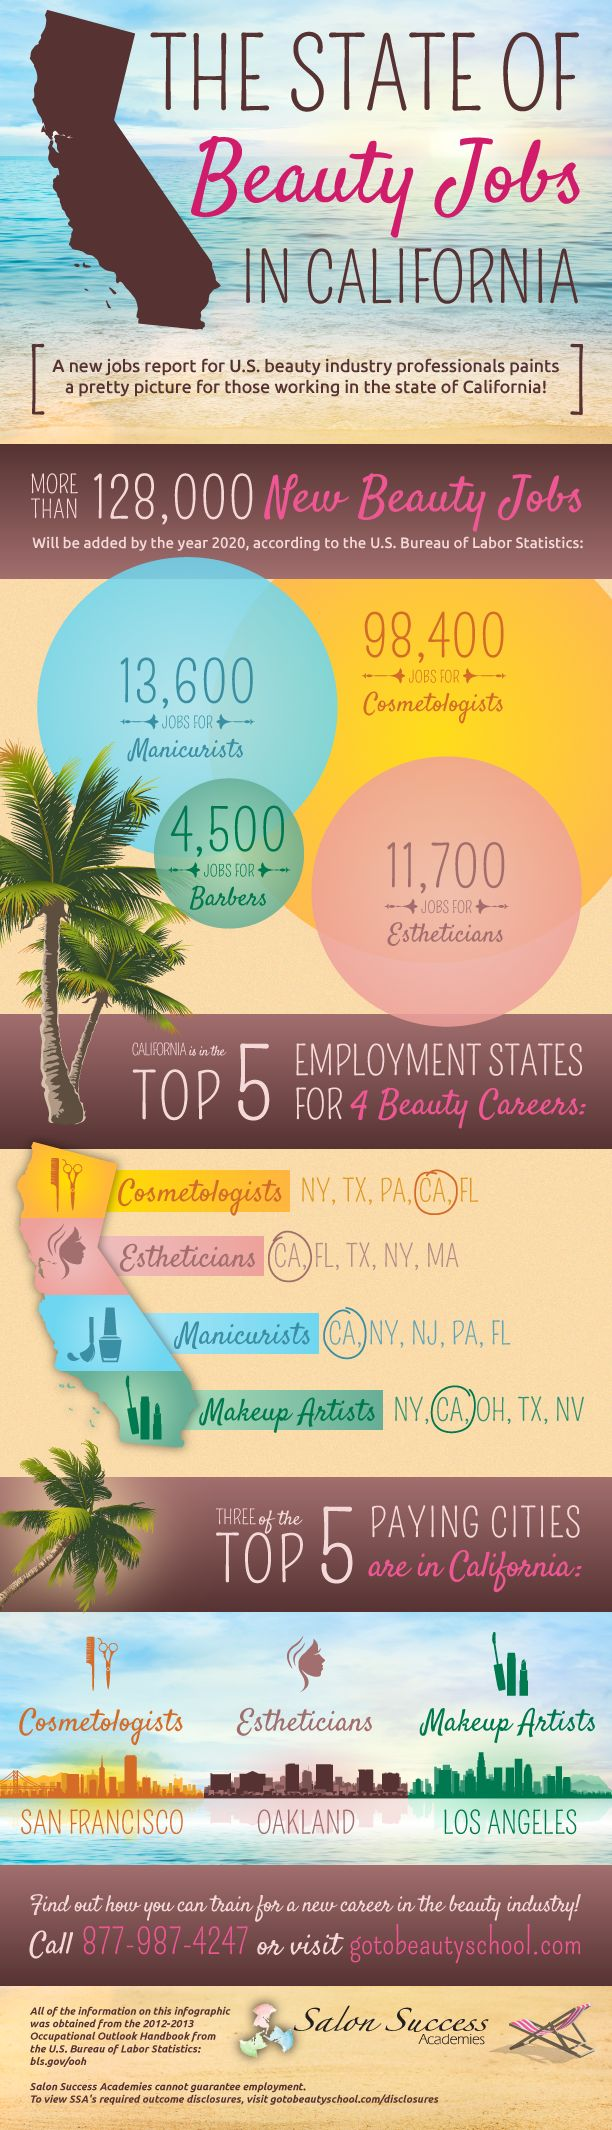 The State of Beauty Jobs in California [Infographic]